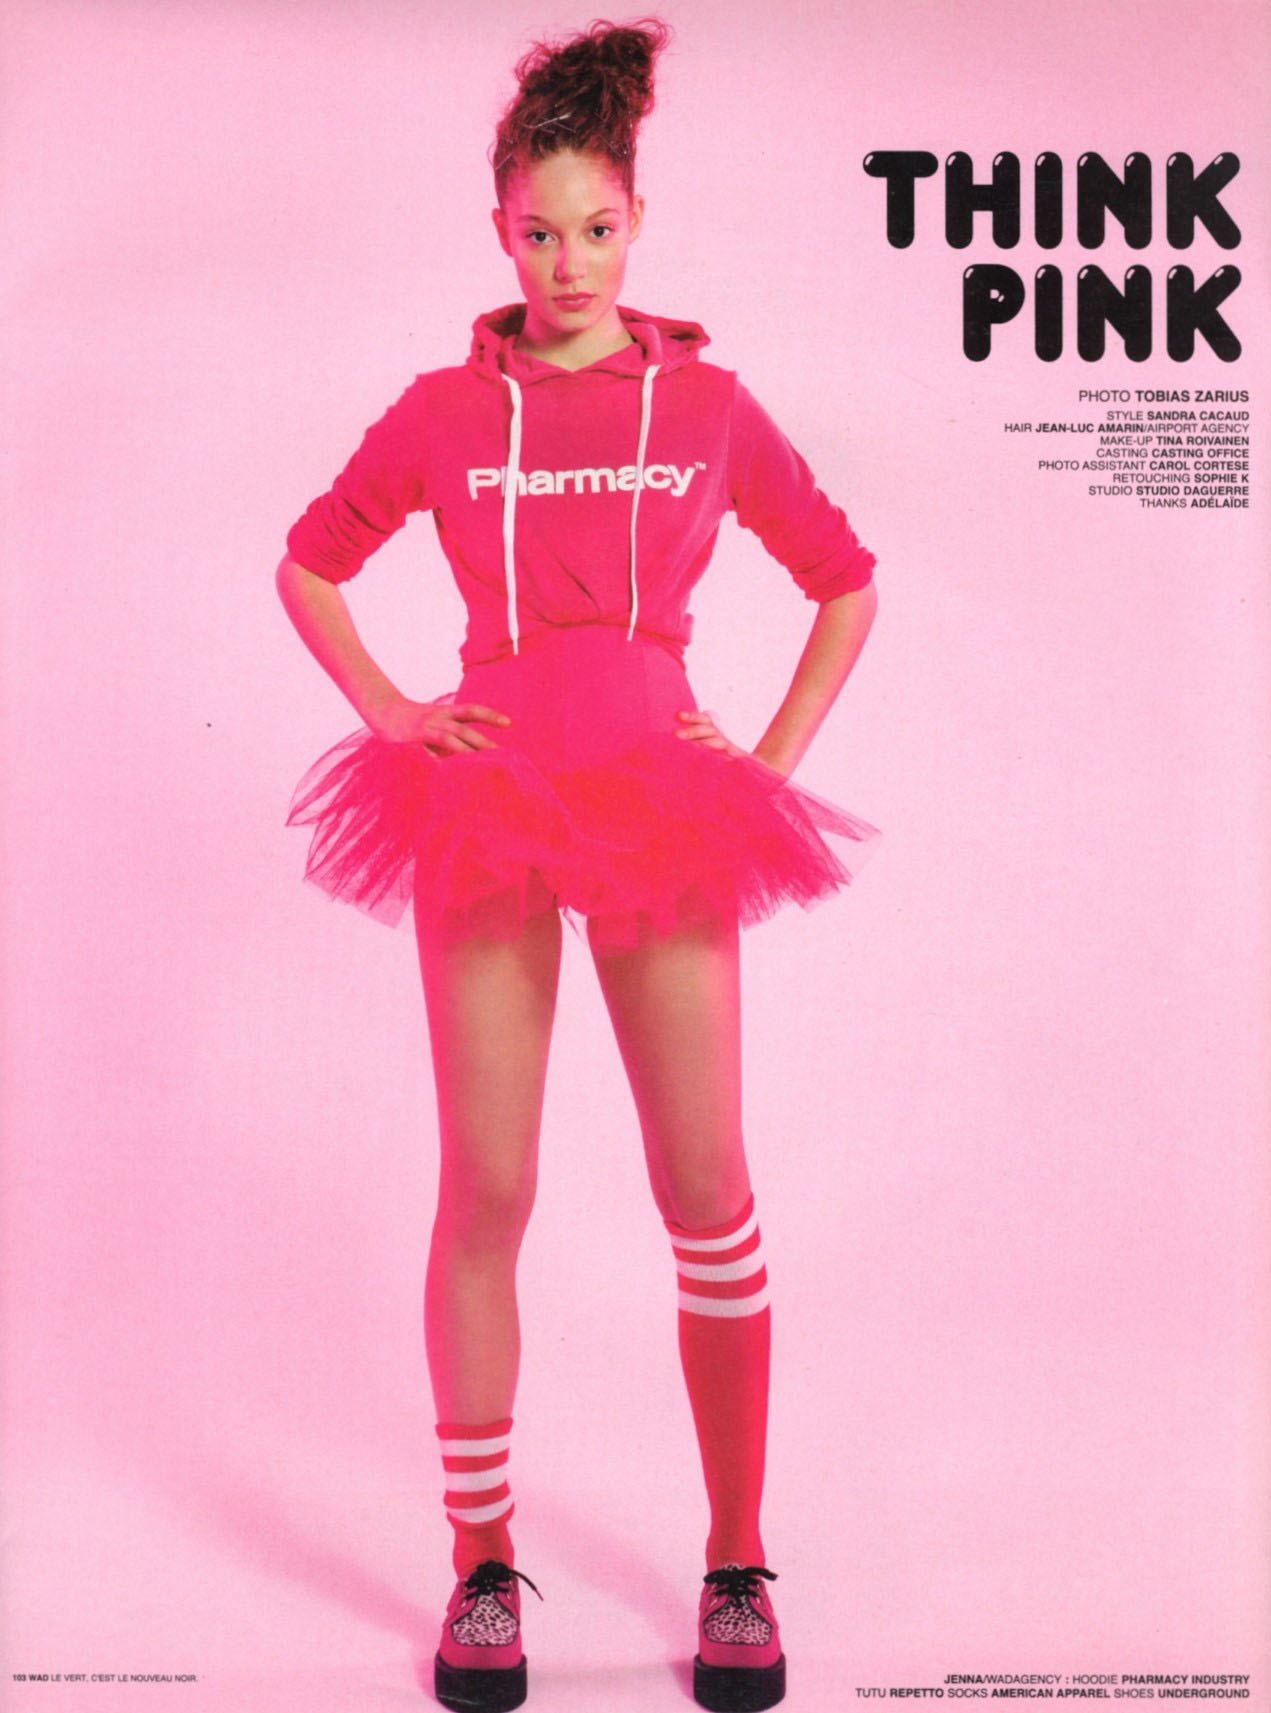 think pink photography tobias zarius style sandra cacaud wad june july august 2007 1